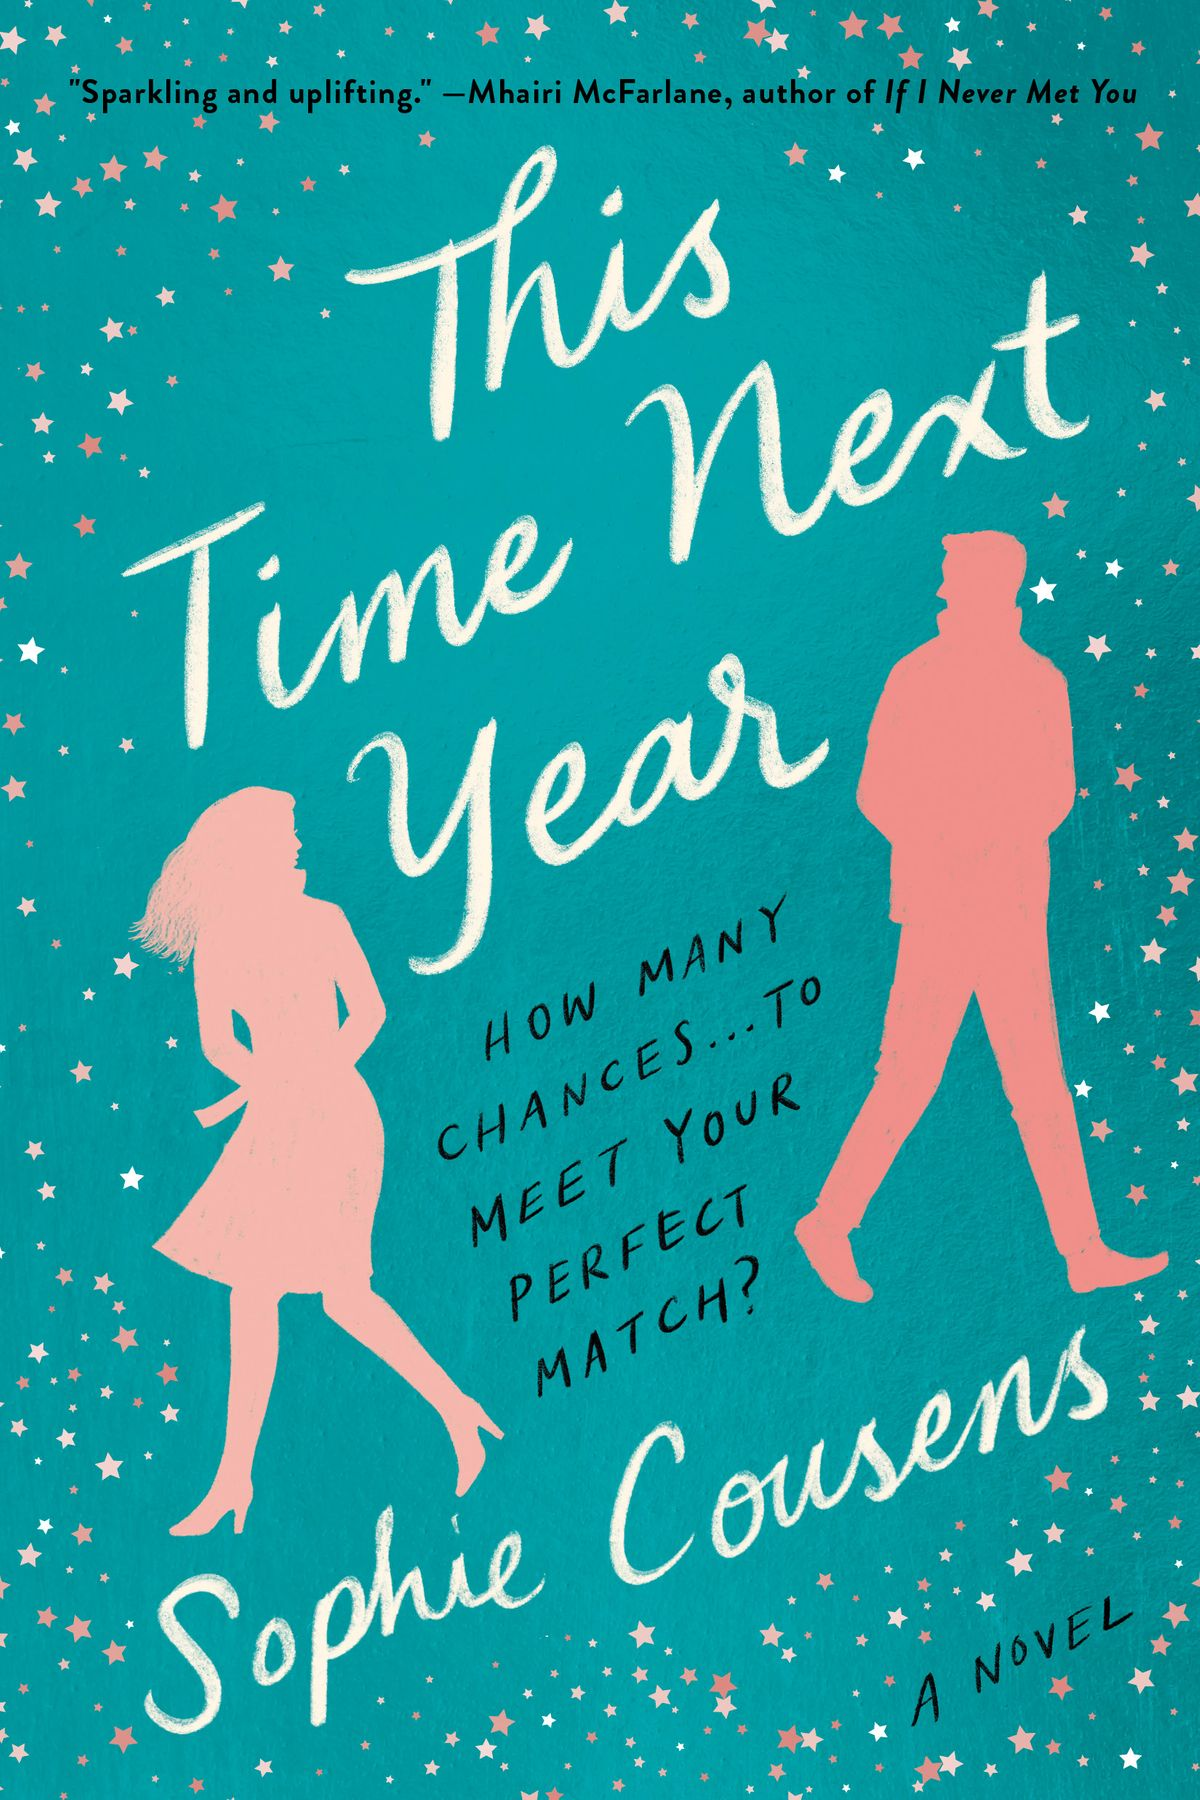 Sophie Cousens - This Time Next Year